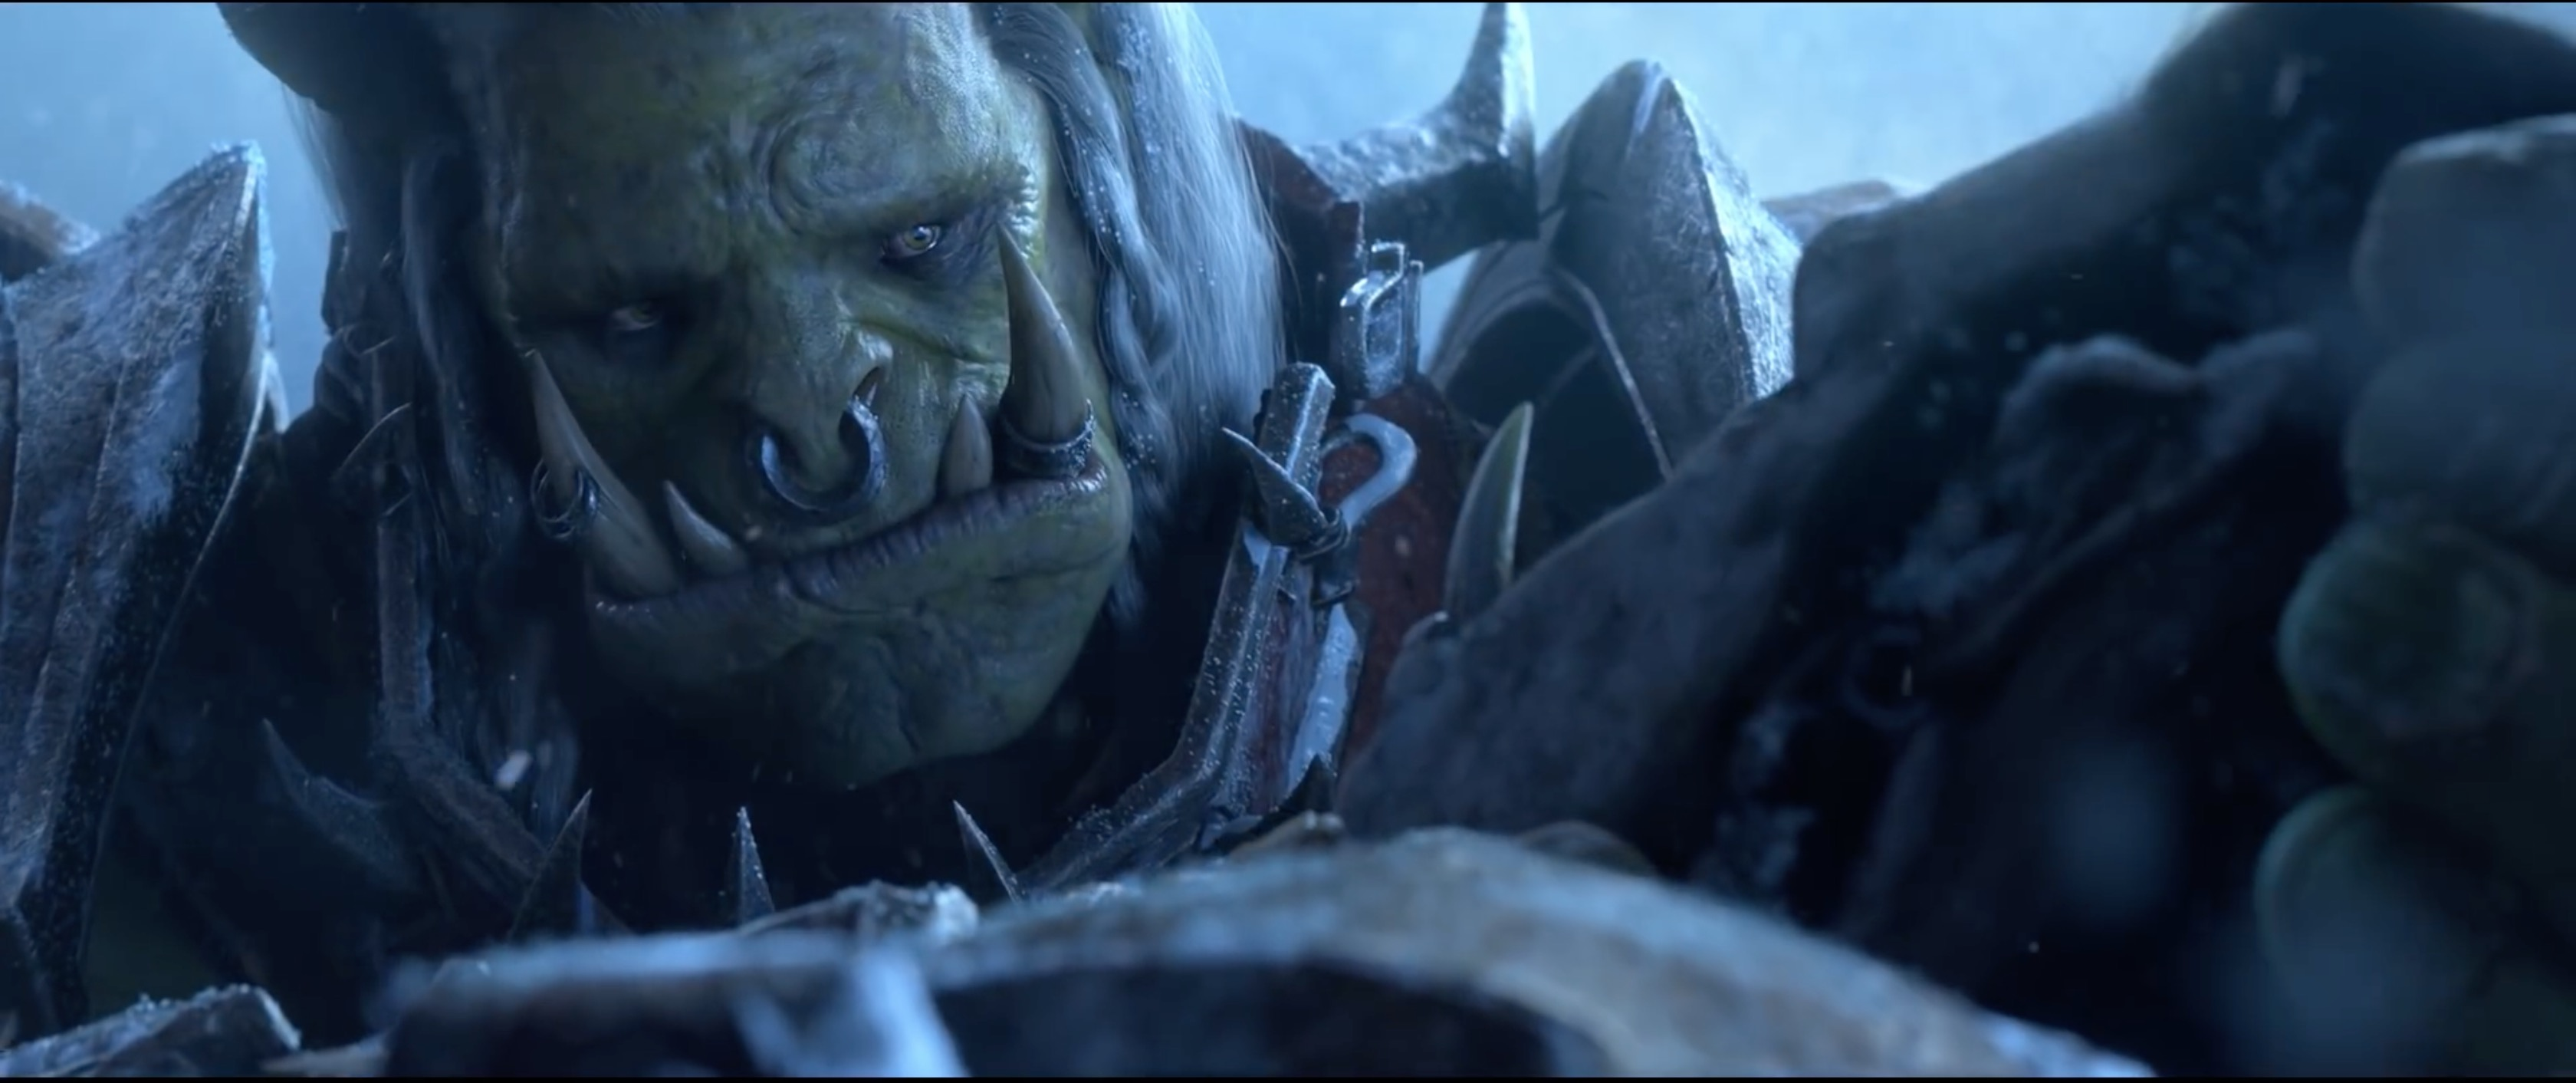 World of Warcraft Cinematic: Old Soldier